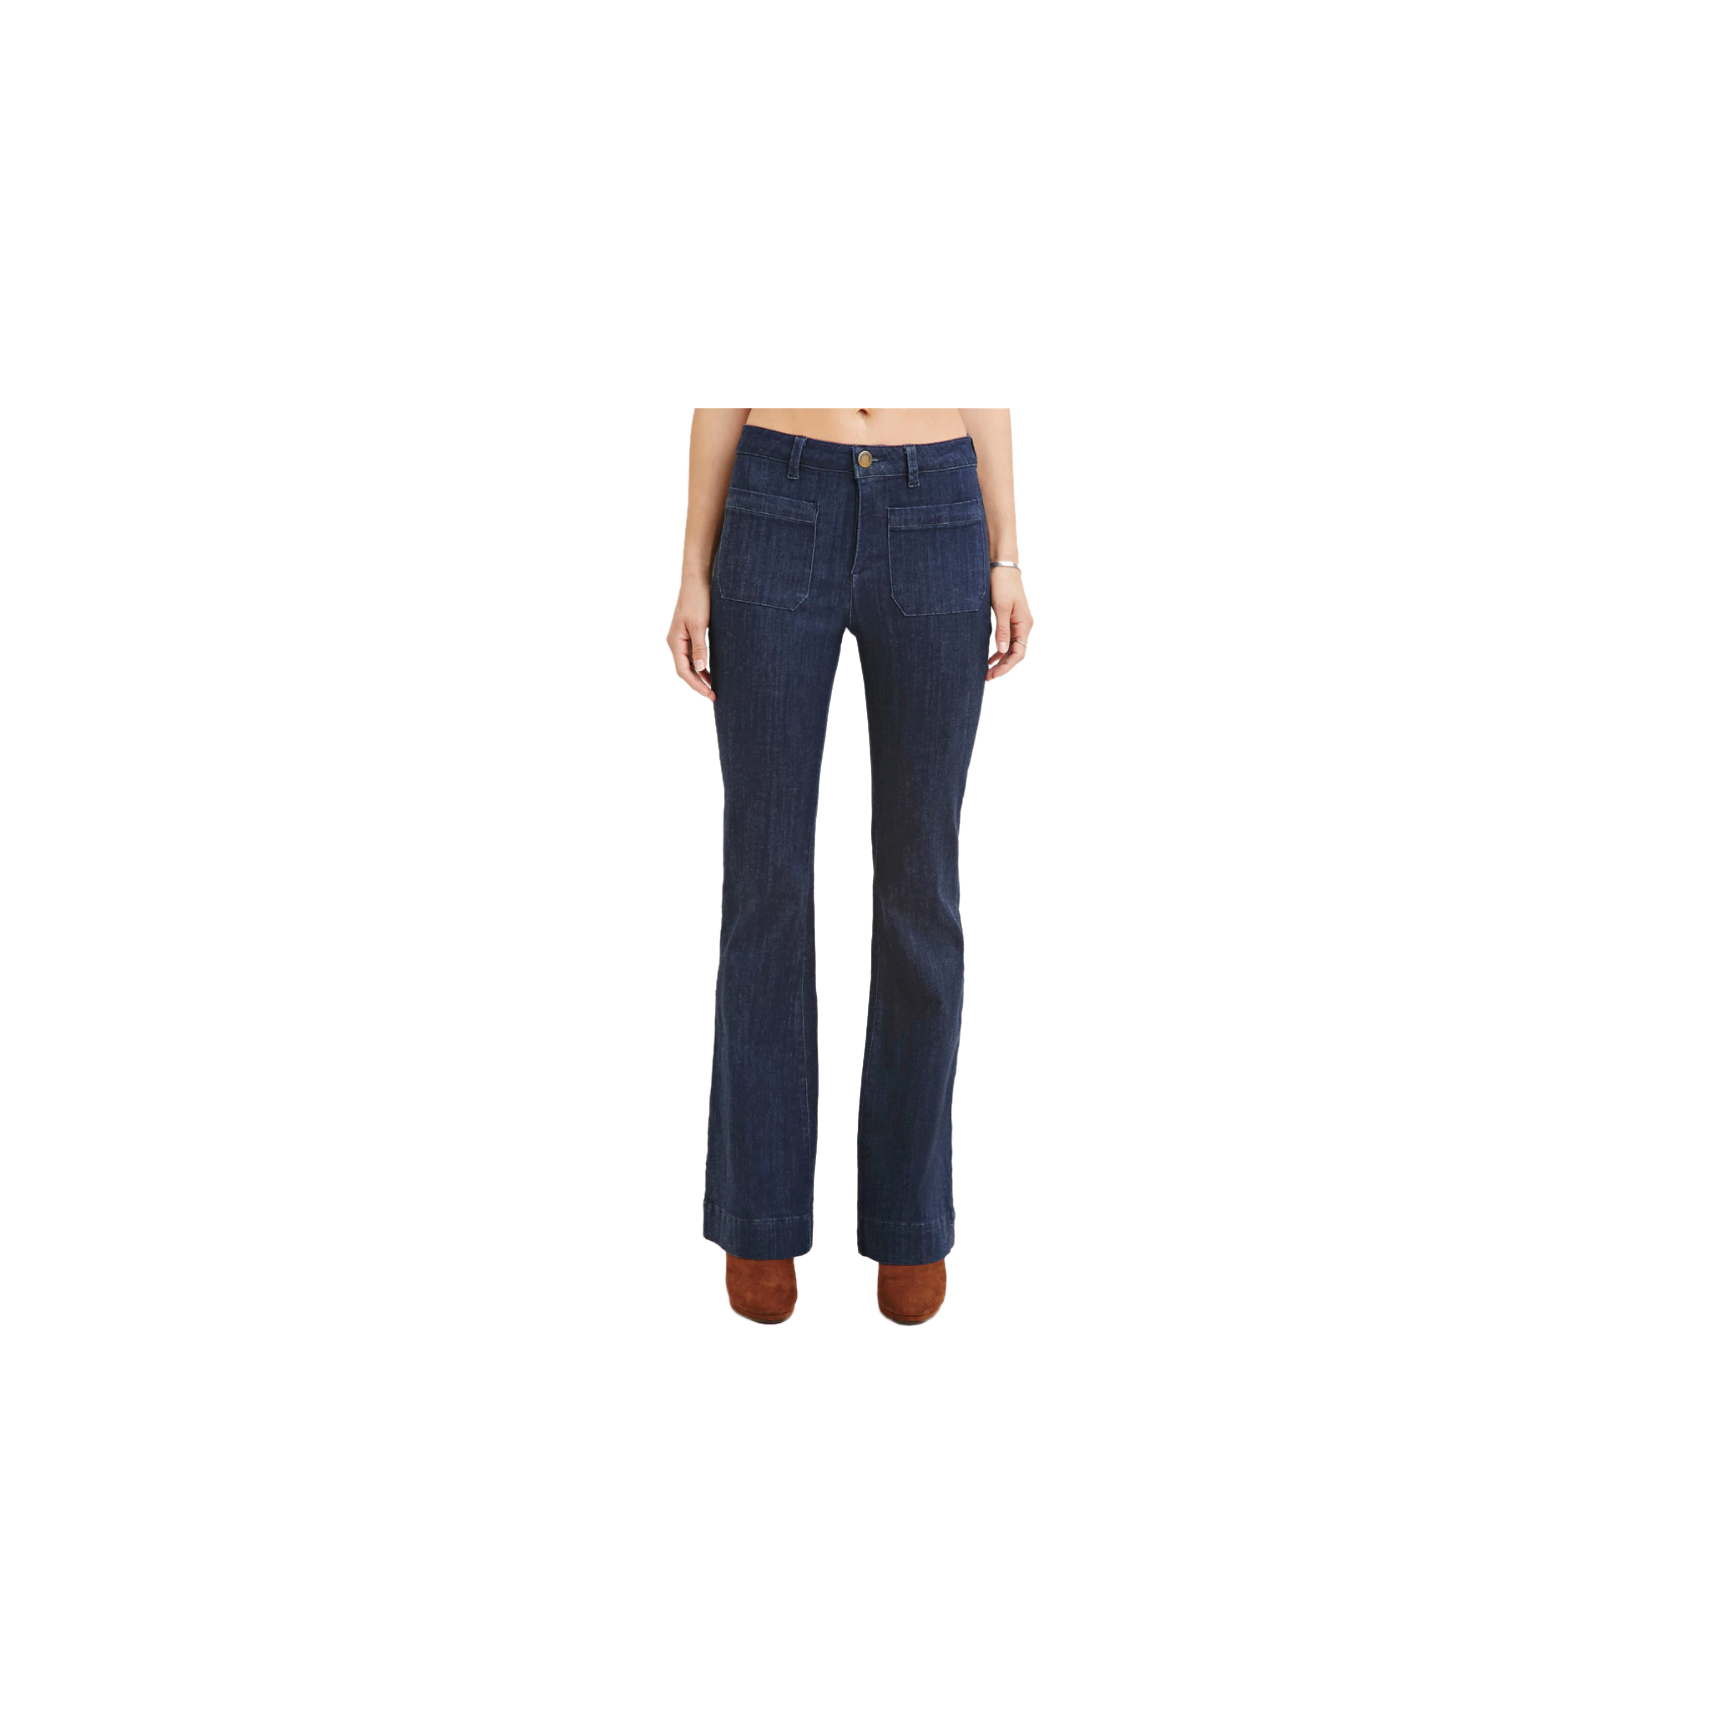 Forever21 Contemporary Classic Flare Jeans